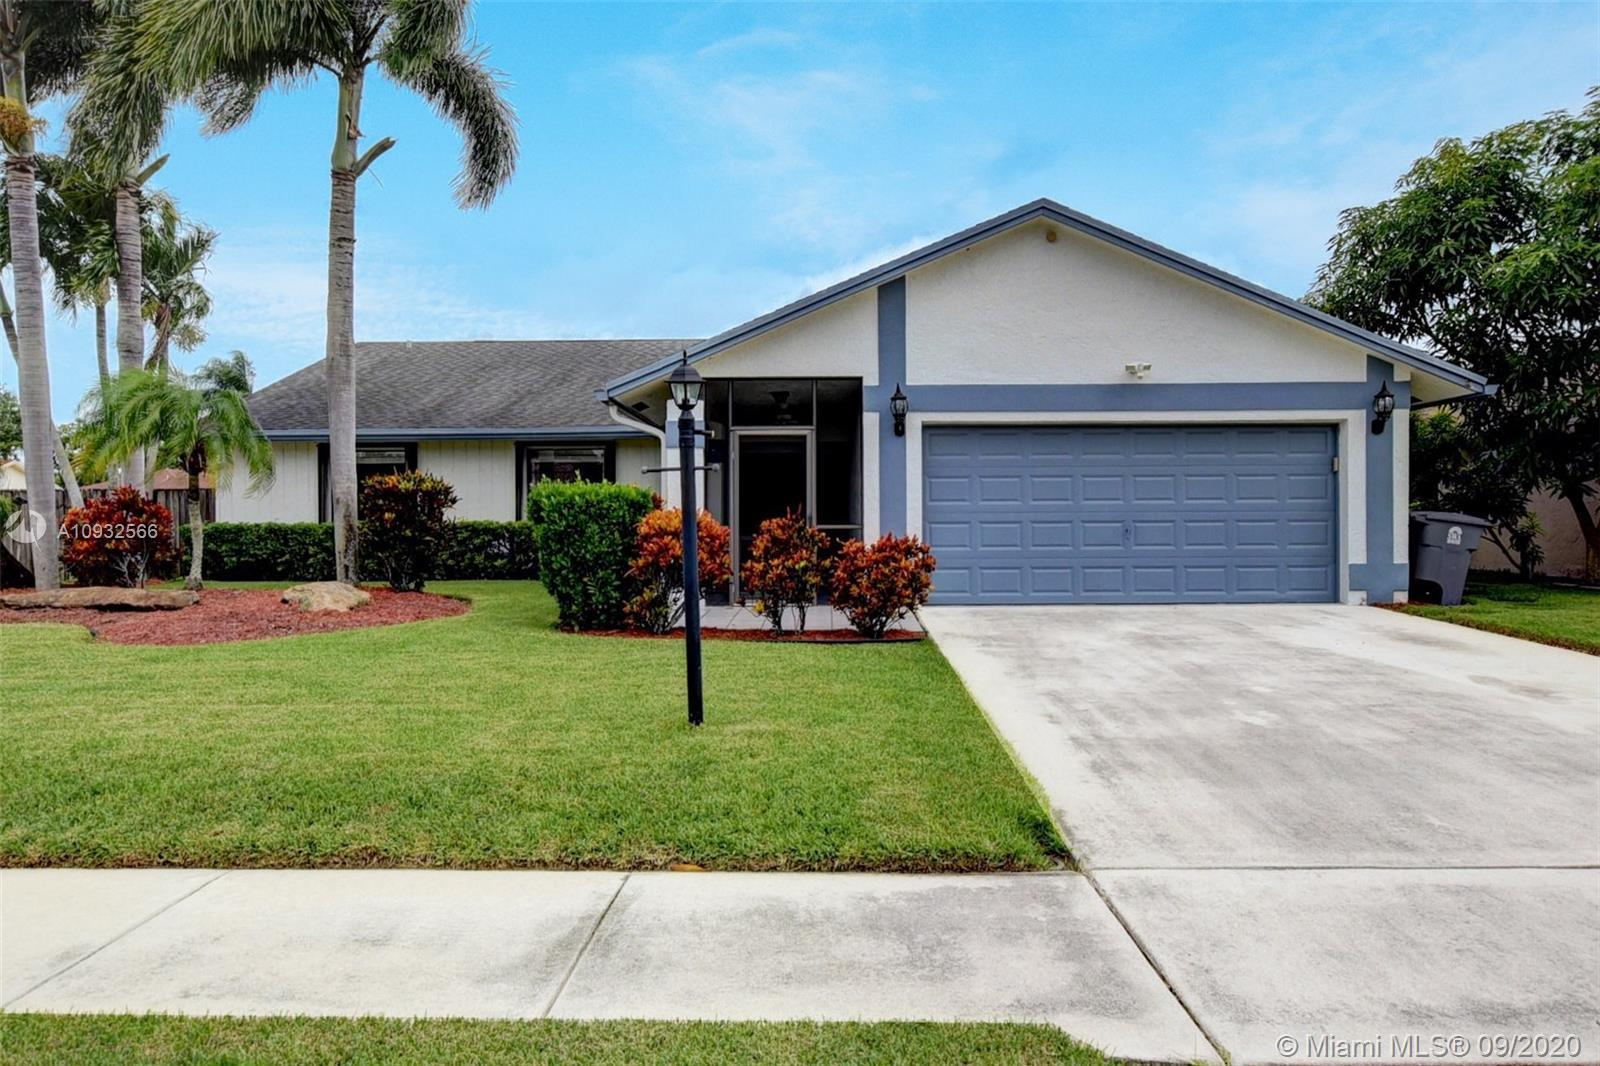 Welcome to this lovely corner lot home in Boca Fontana! This 3 bedroom, saltwater pool home, really